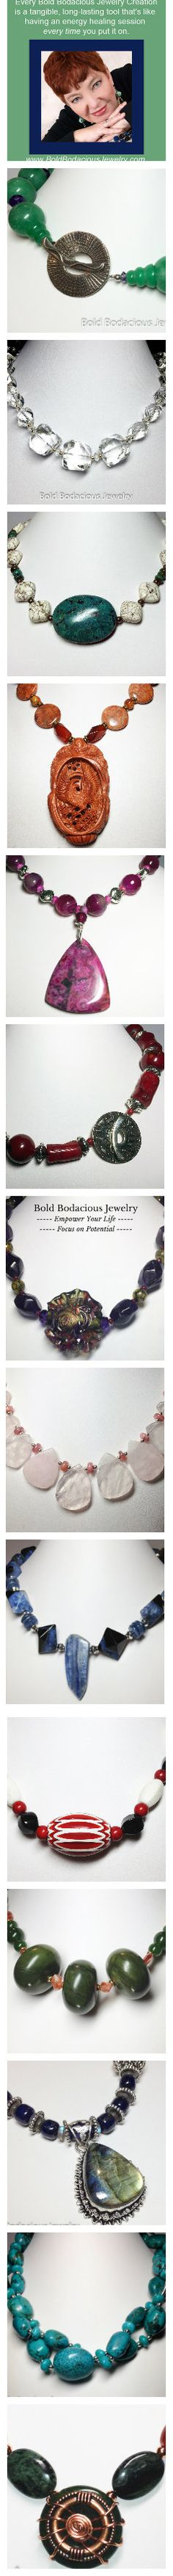 Every Piece of Bold Bodacious Jewelry is a tangible, long-lasting tools, that's like having an energy healing session every time you put it on. www.boldbodaciousjewelry.com